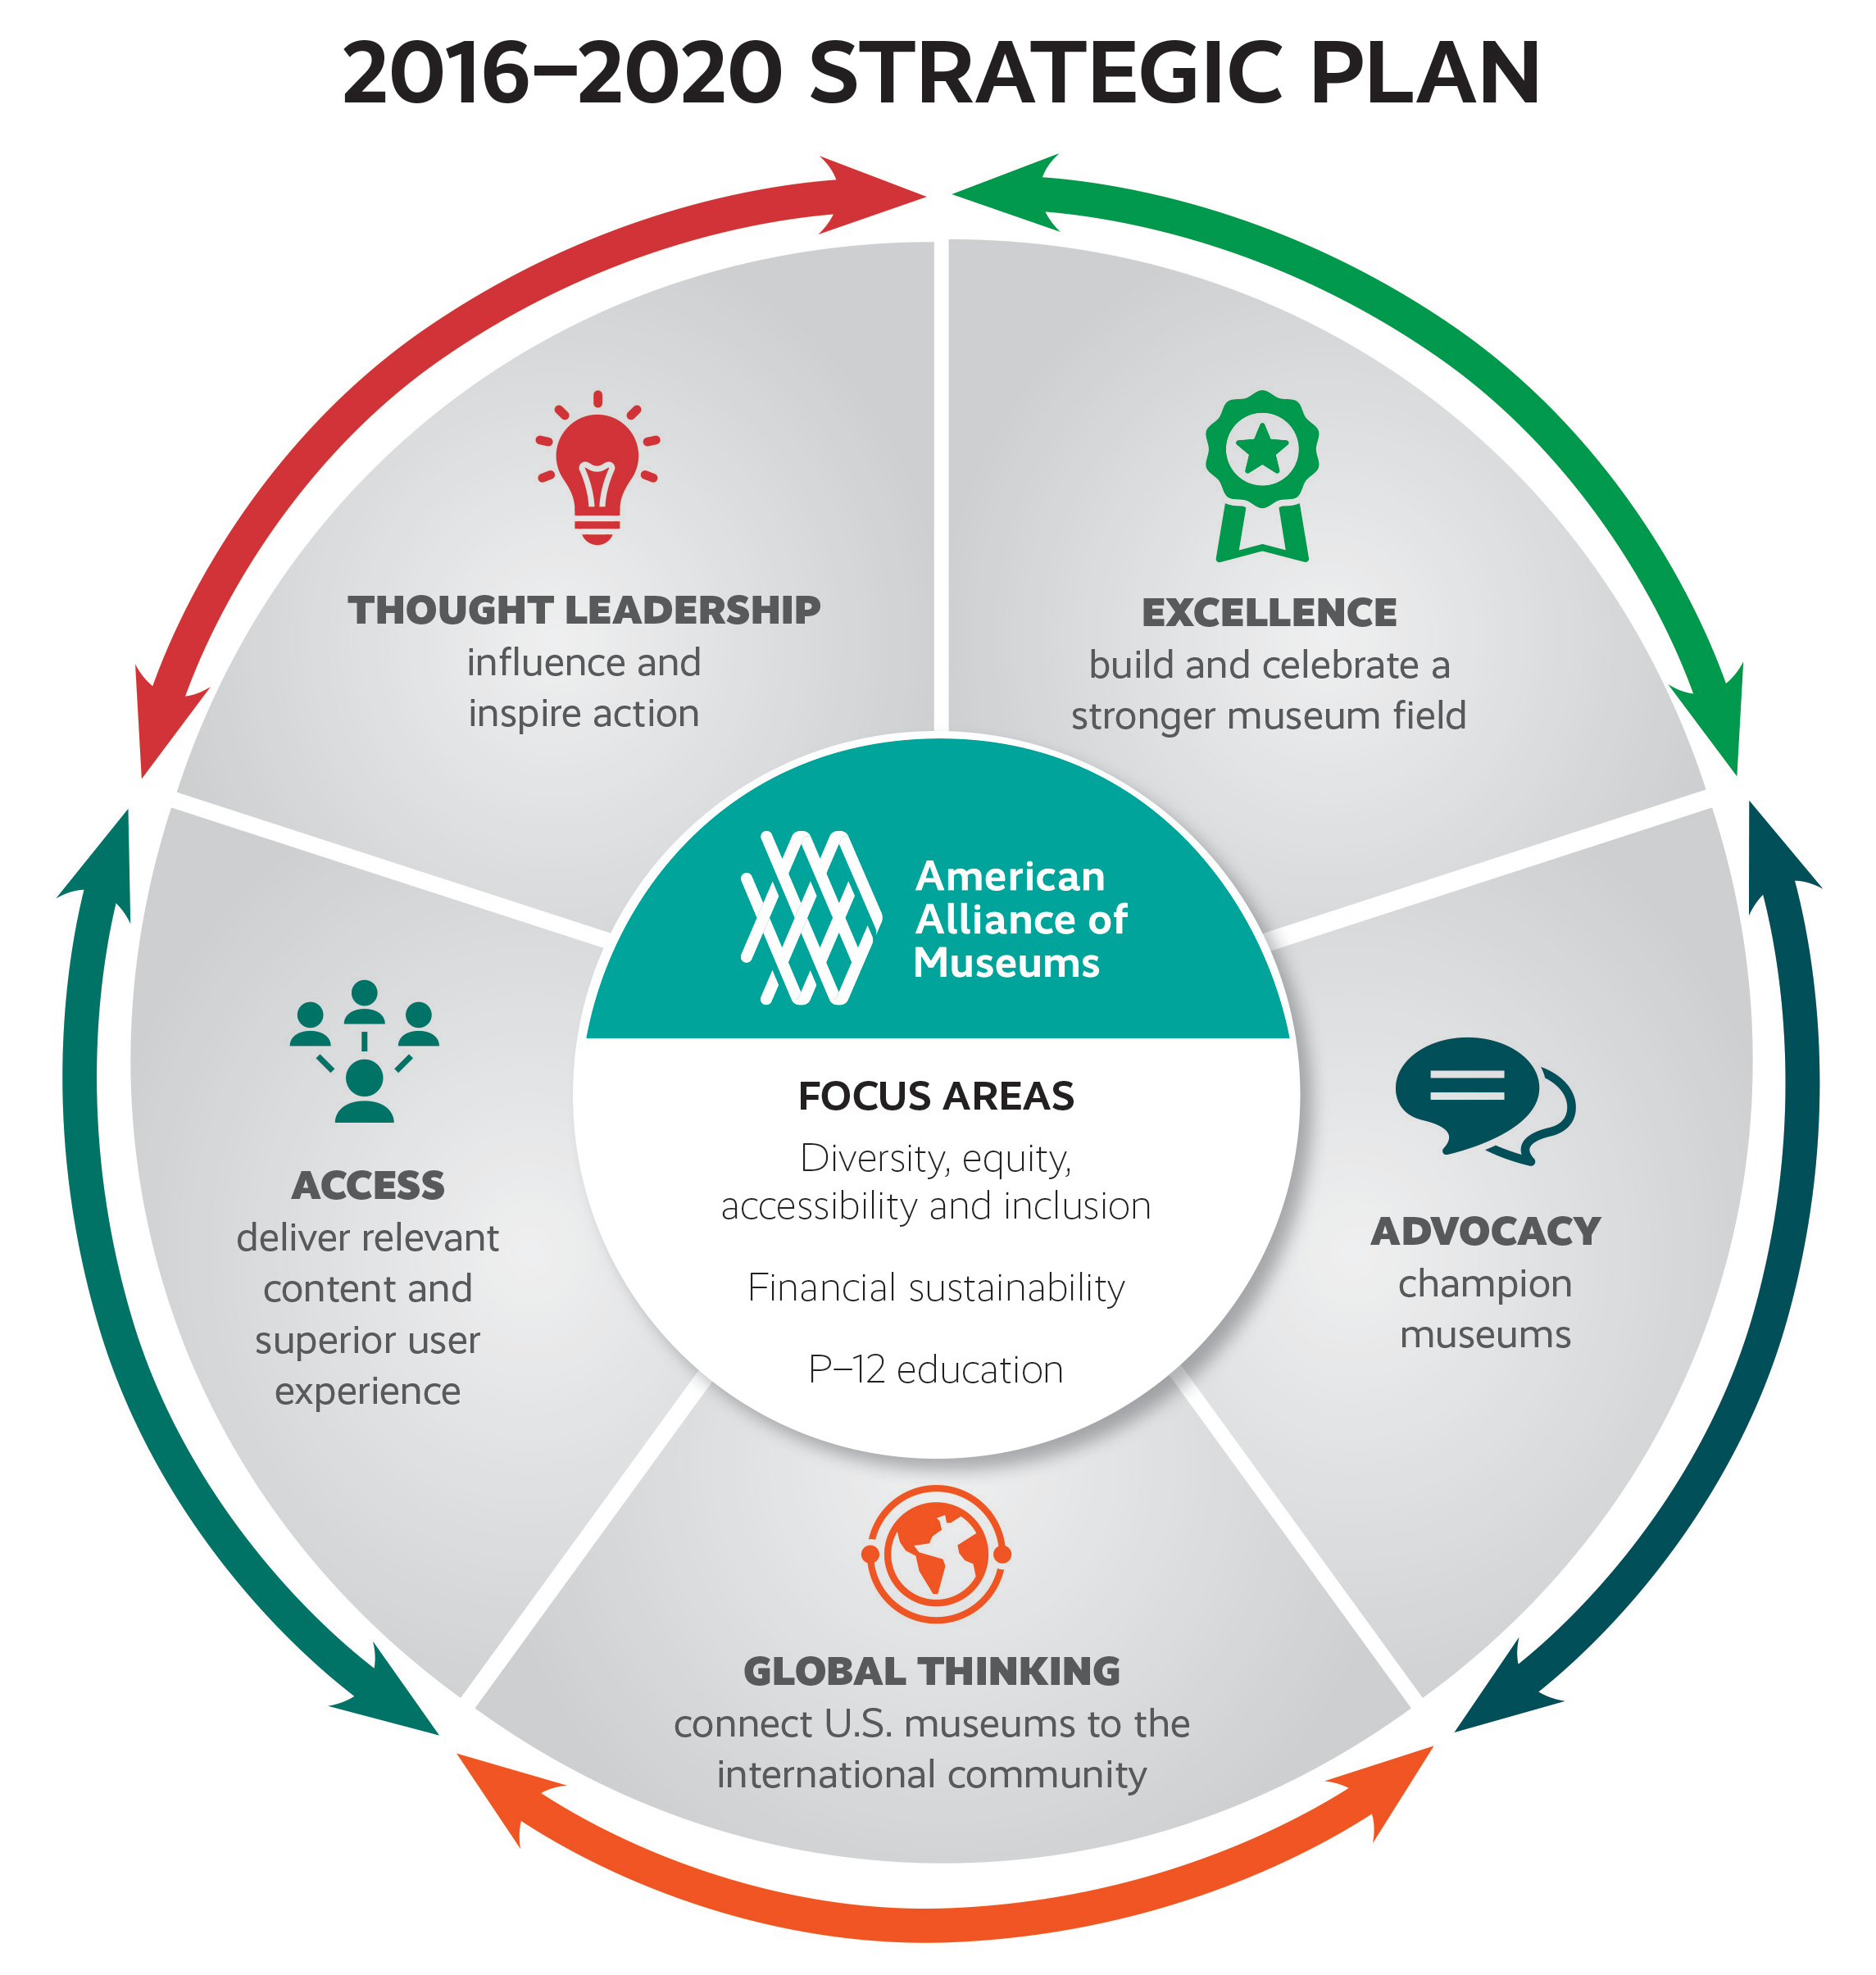 Strategic Plan Graphic Google Search Strategic Plan Design 2017 19 Pinterest